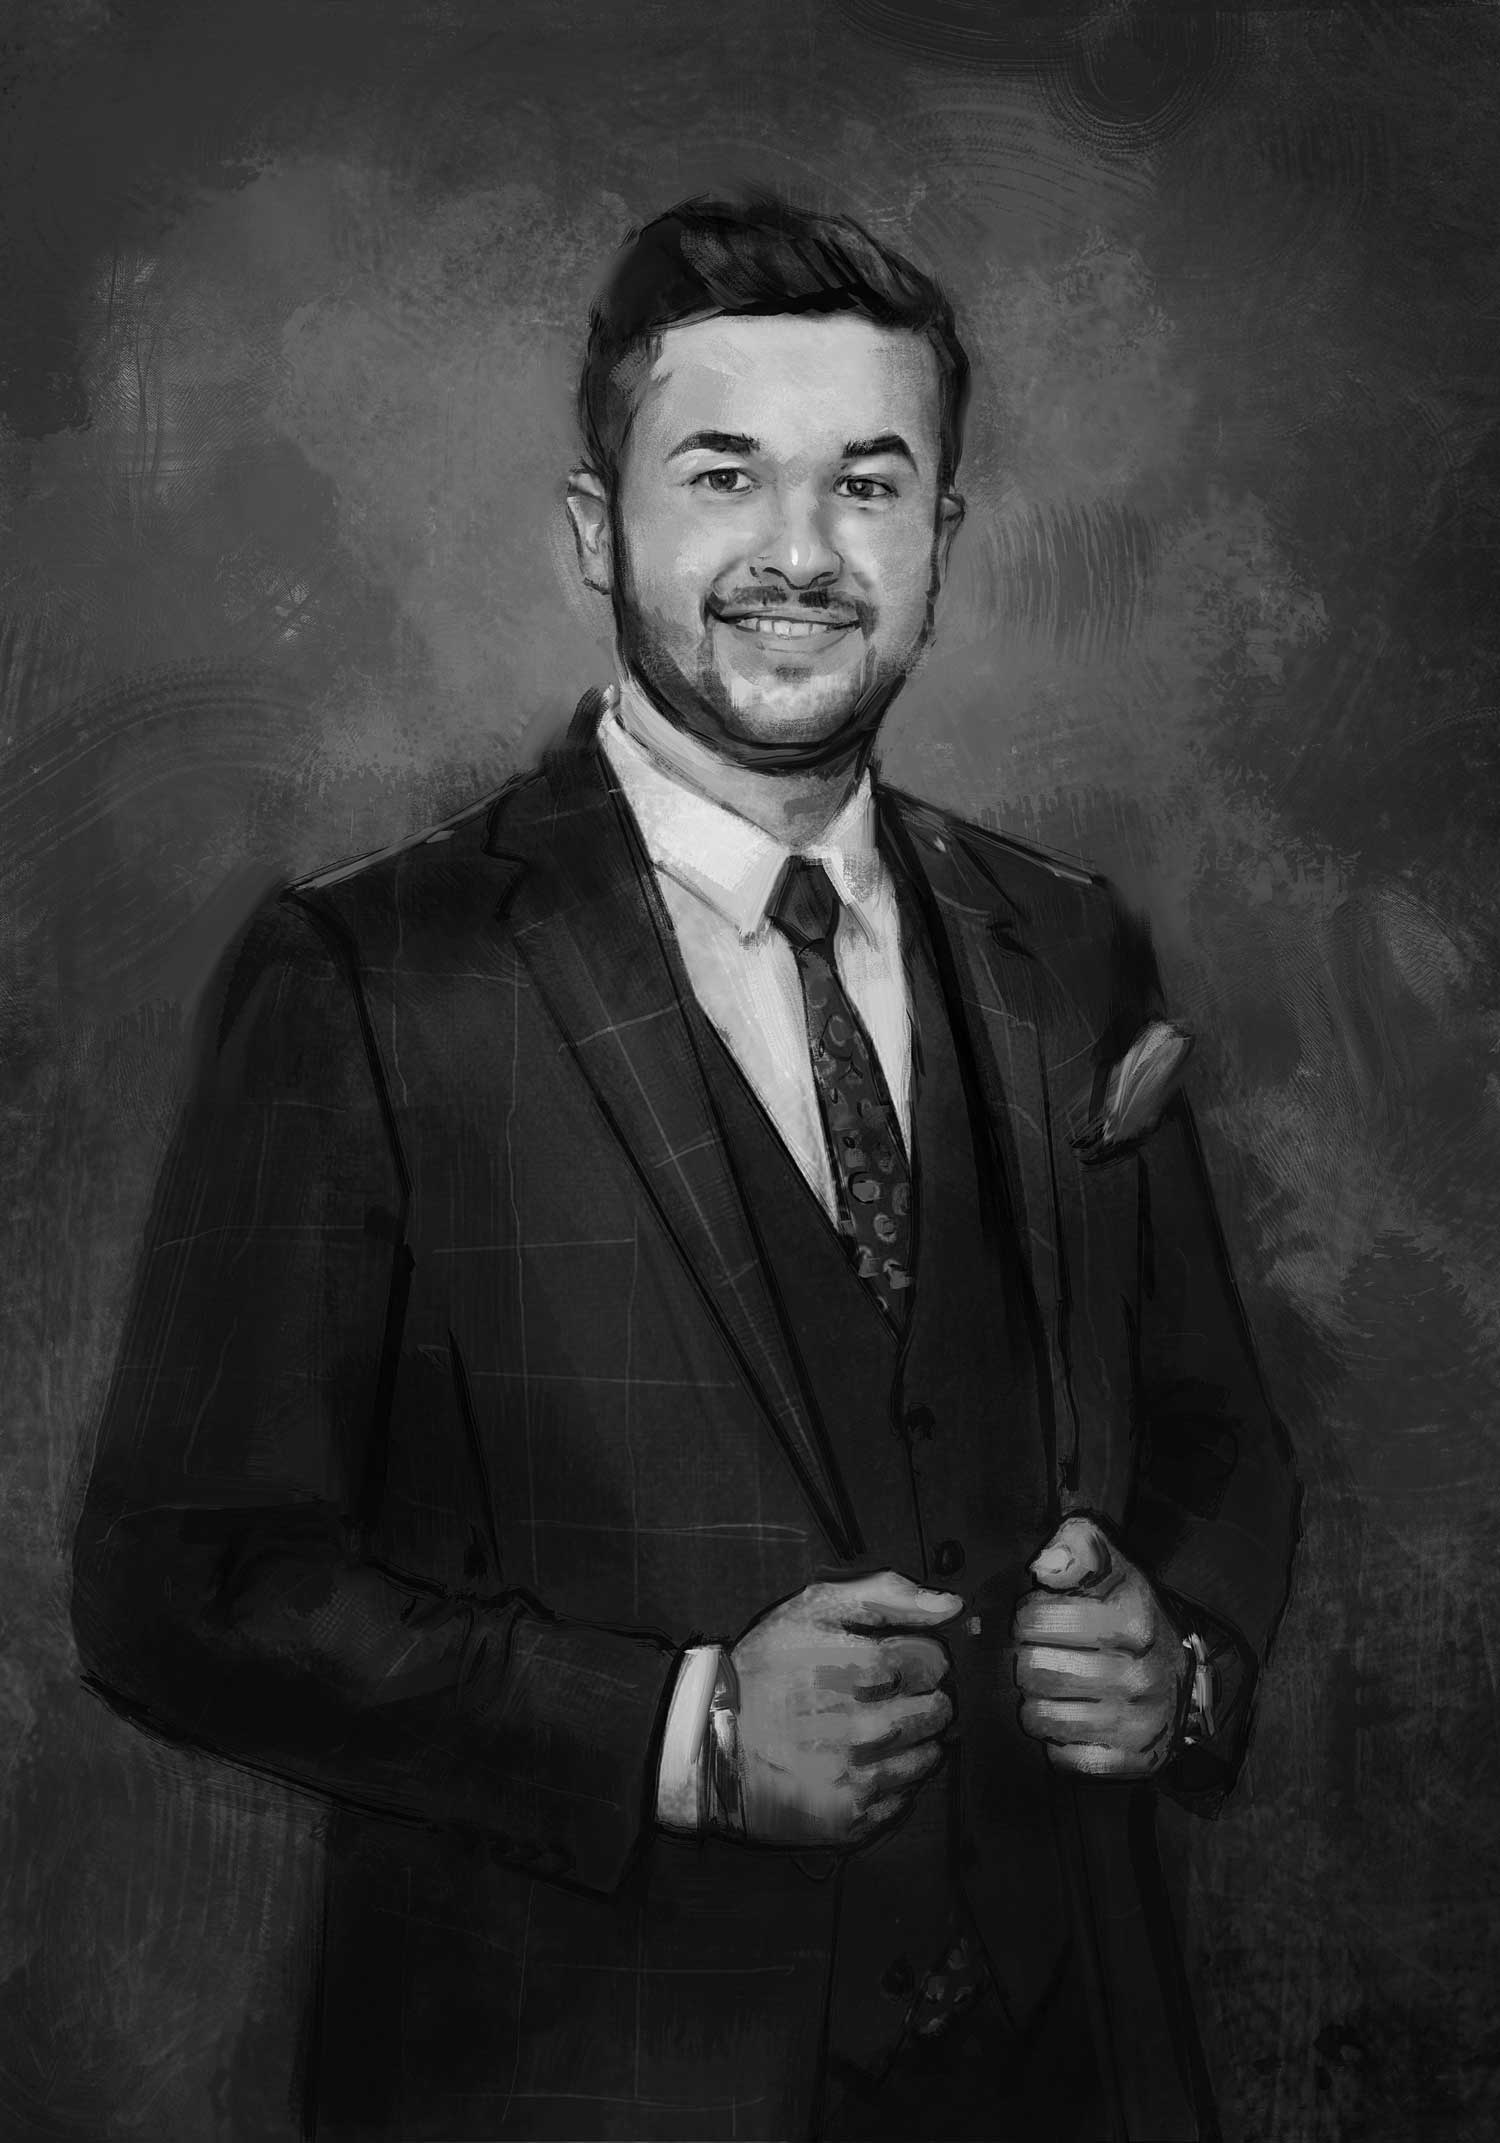 Sketch of portrait of young man in suit.